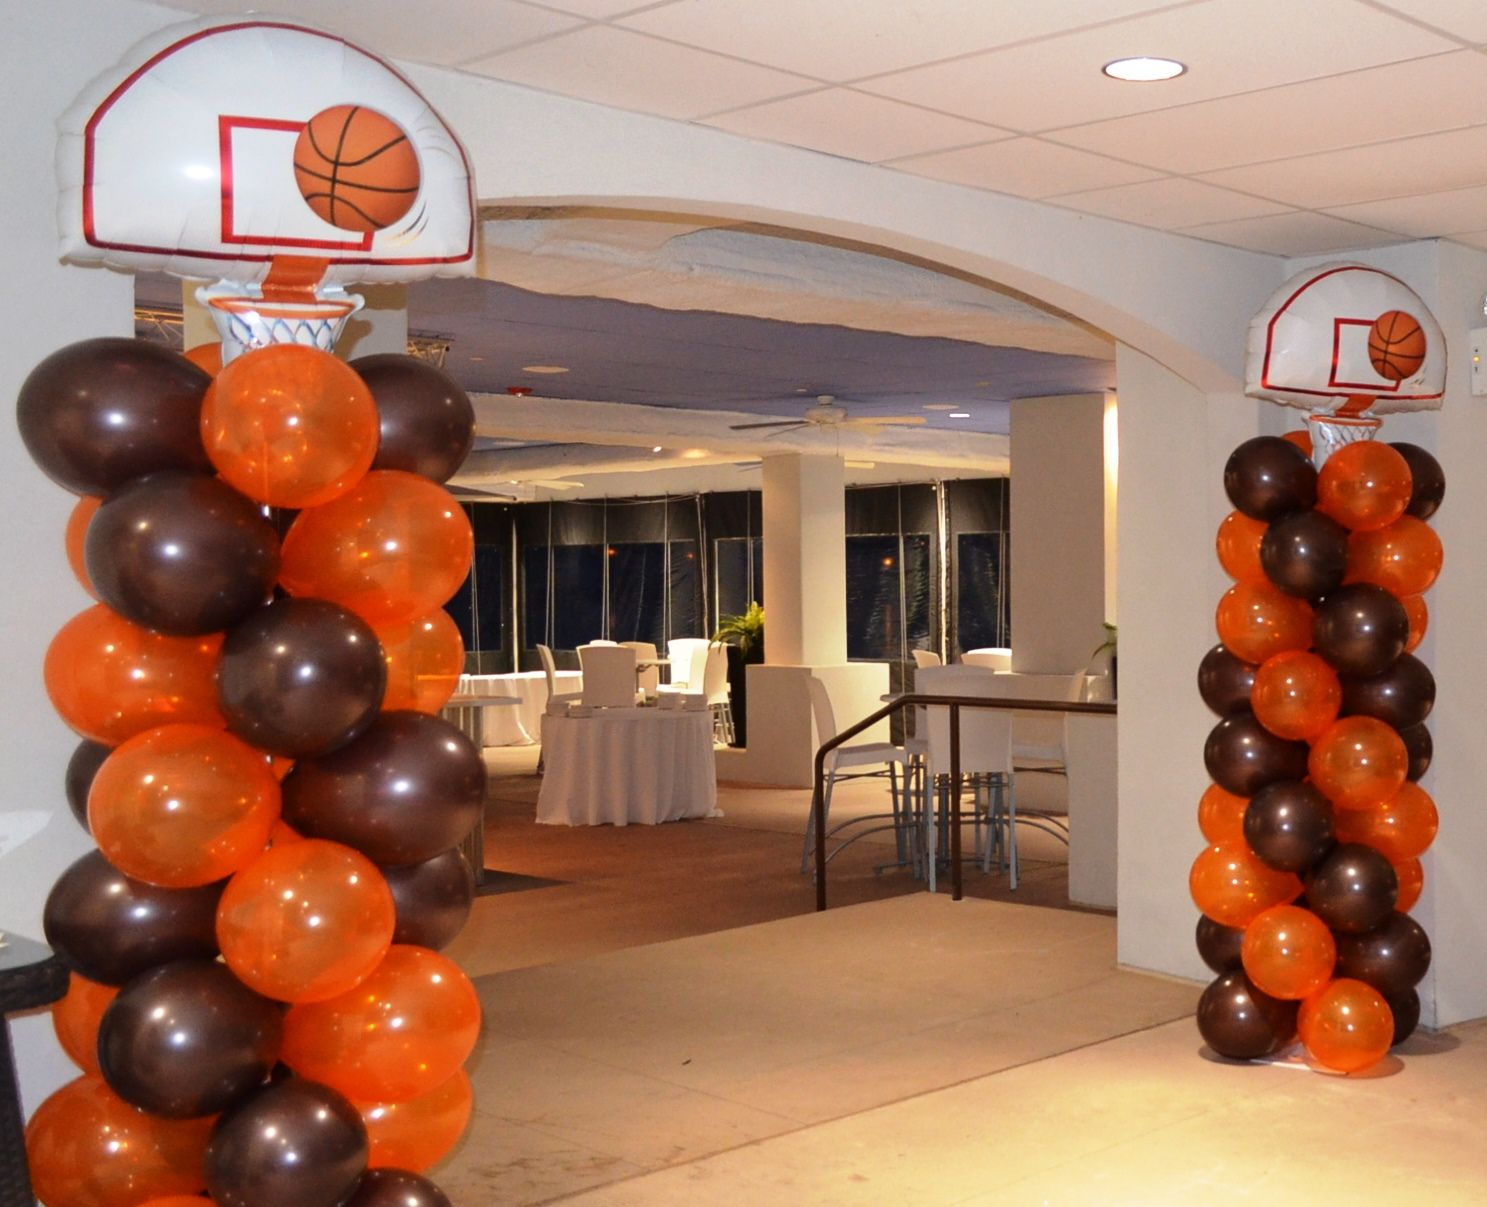 Where can you buy balloon arch kits in delaware - Fun Basketball Themed Balloon Columns For Today Bar Mitzvah At The Lambertville Station Inn In Lambertville